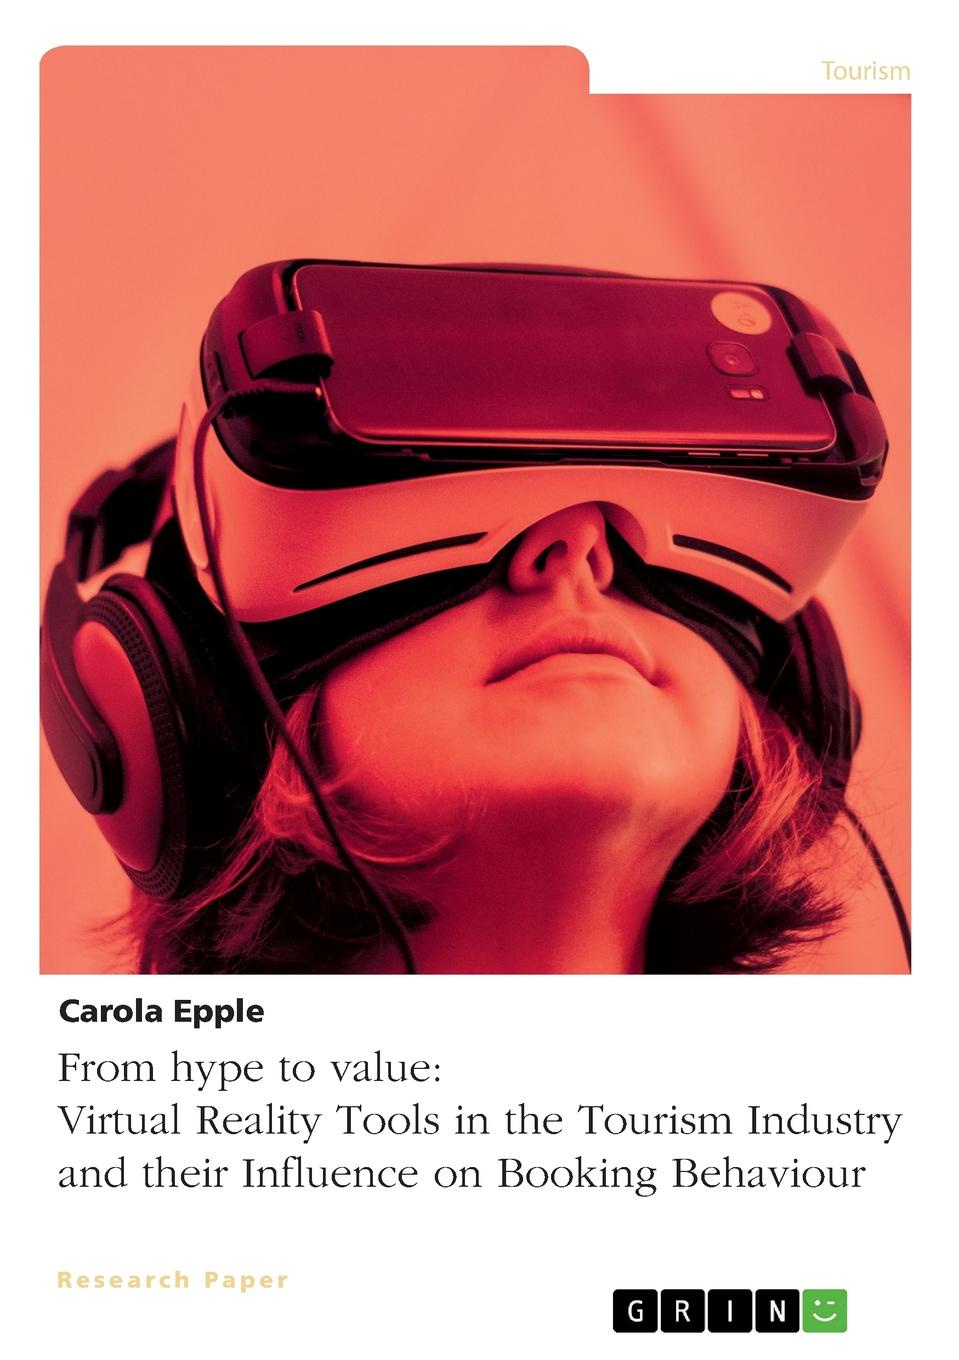 Carola Epple From hype to value. Virtual Reality Tools in the Tourism Industry and their Influence on Booking Behaviour